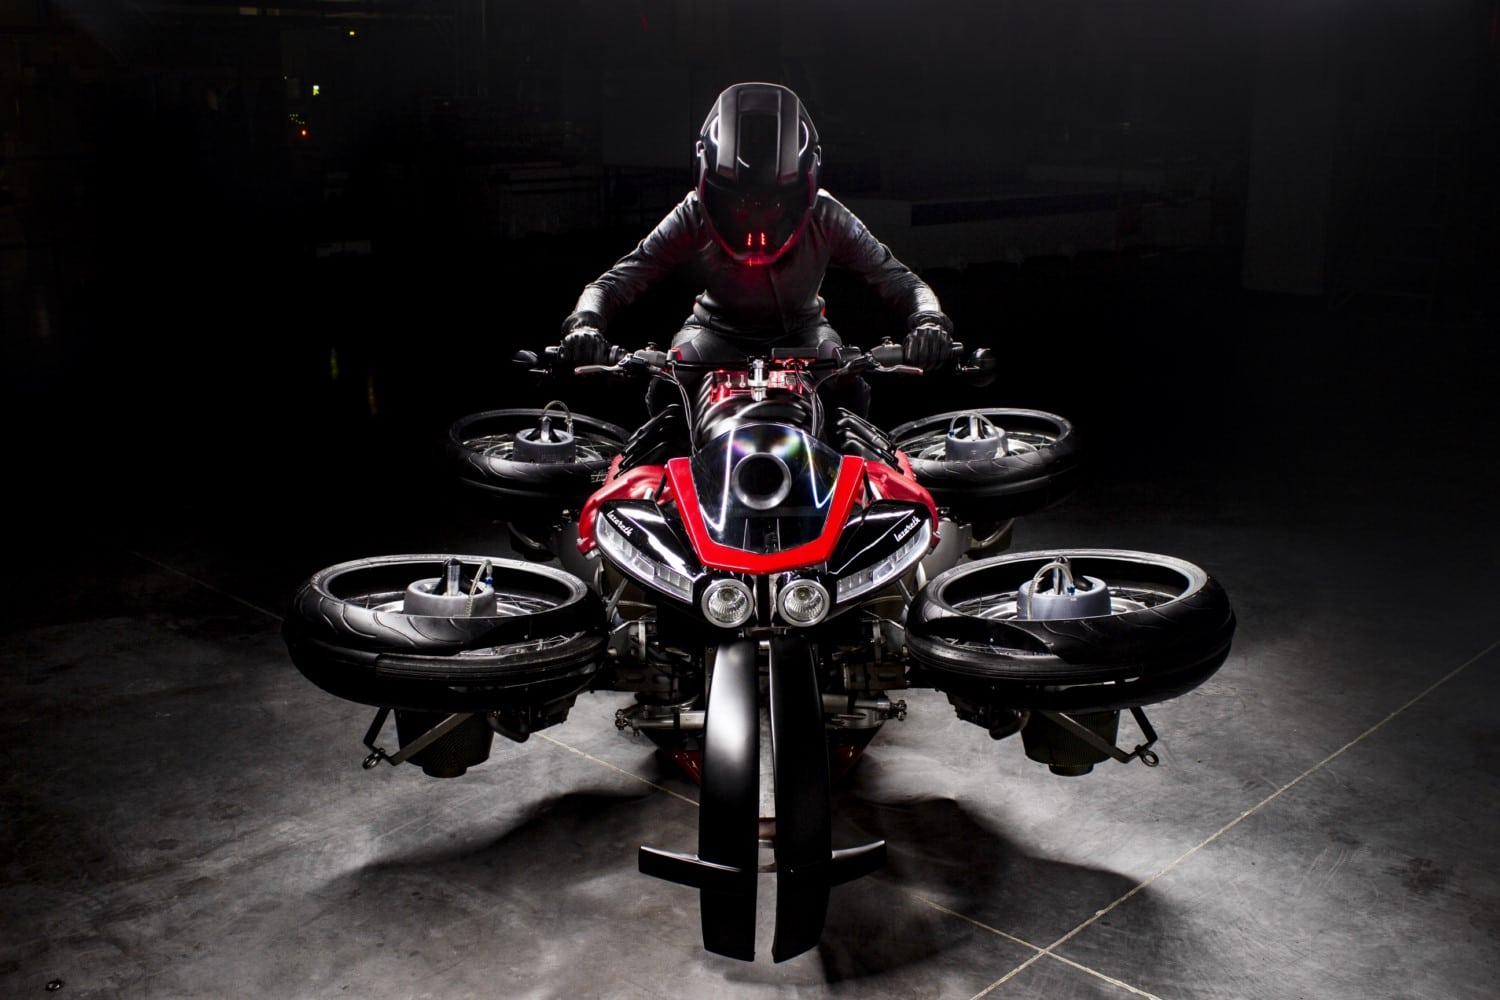 THE LAZARETH LMV 496, A TRUE FLYING ELECTRIC MOTORCYCLE